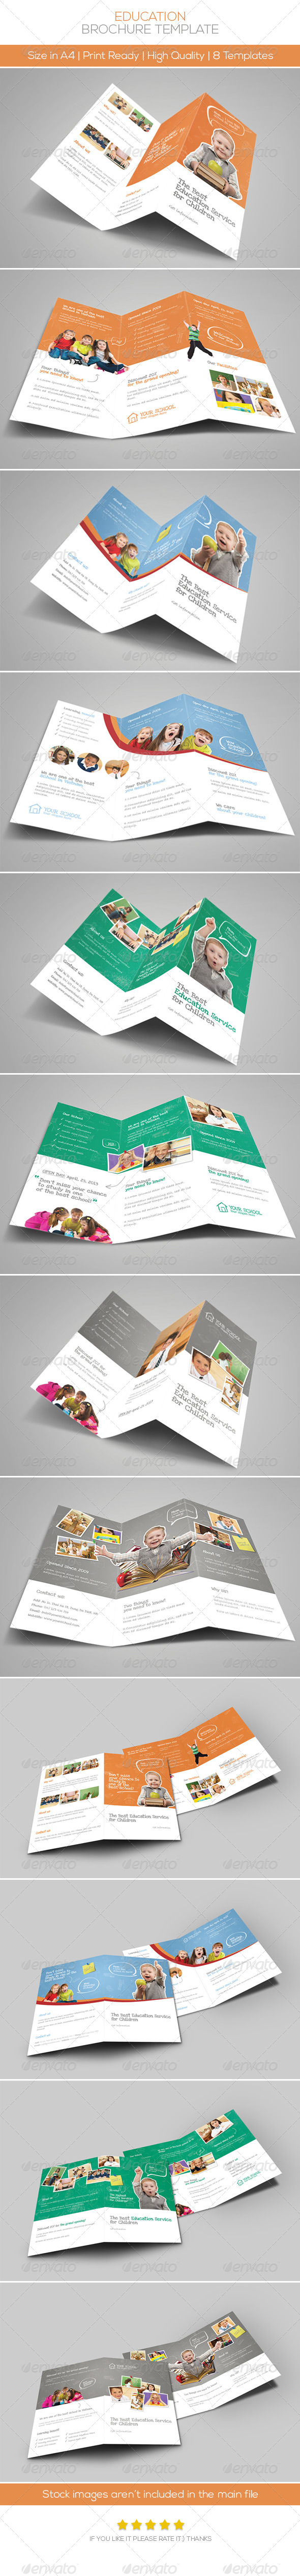 GraphicRiver Premium Education Brochure Tri-fold & Bi-fold 5866821